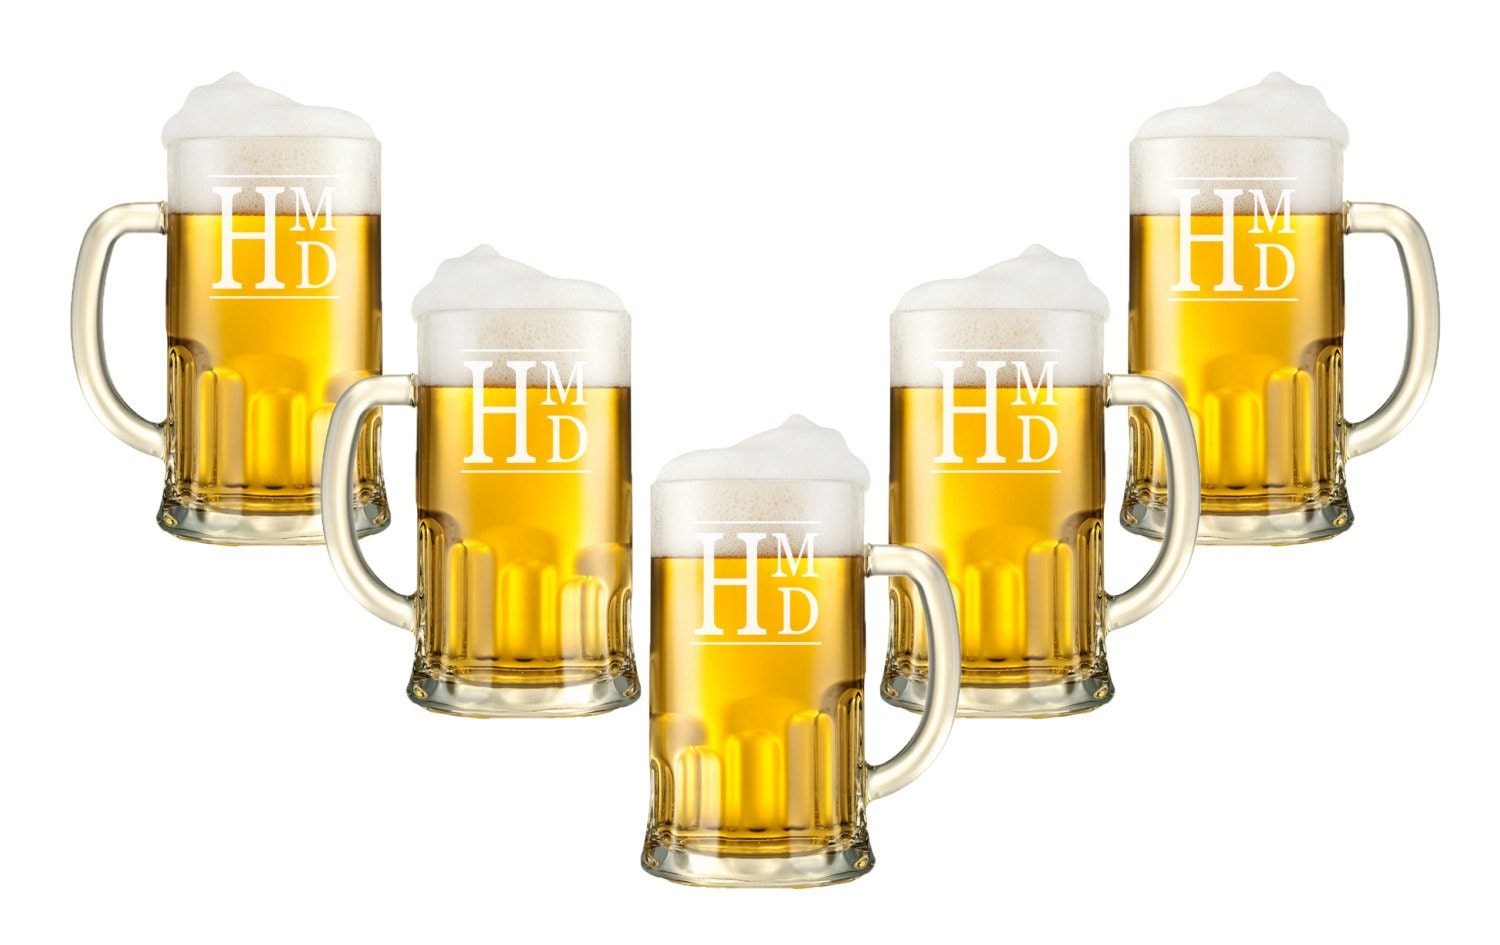 Personalized Beer Mugs - 12oz., Monogram Glasses, Etched Glasses ...